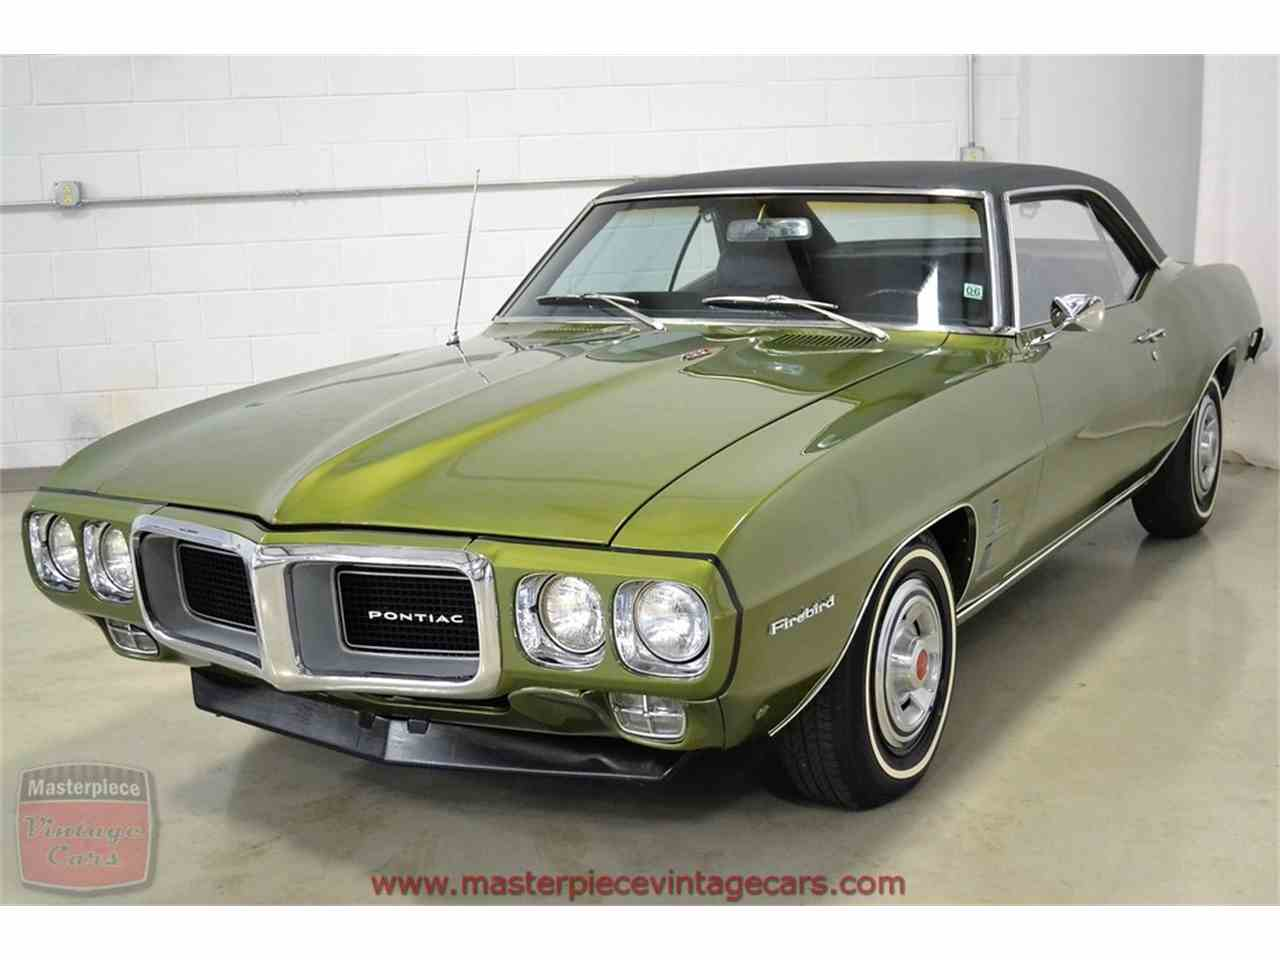 Large Picture of Classic 1969 Pontiac Firebird Offered by Masterpiece Vintage Cars - JGIO